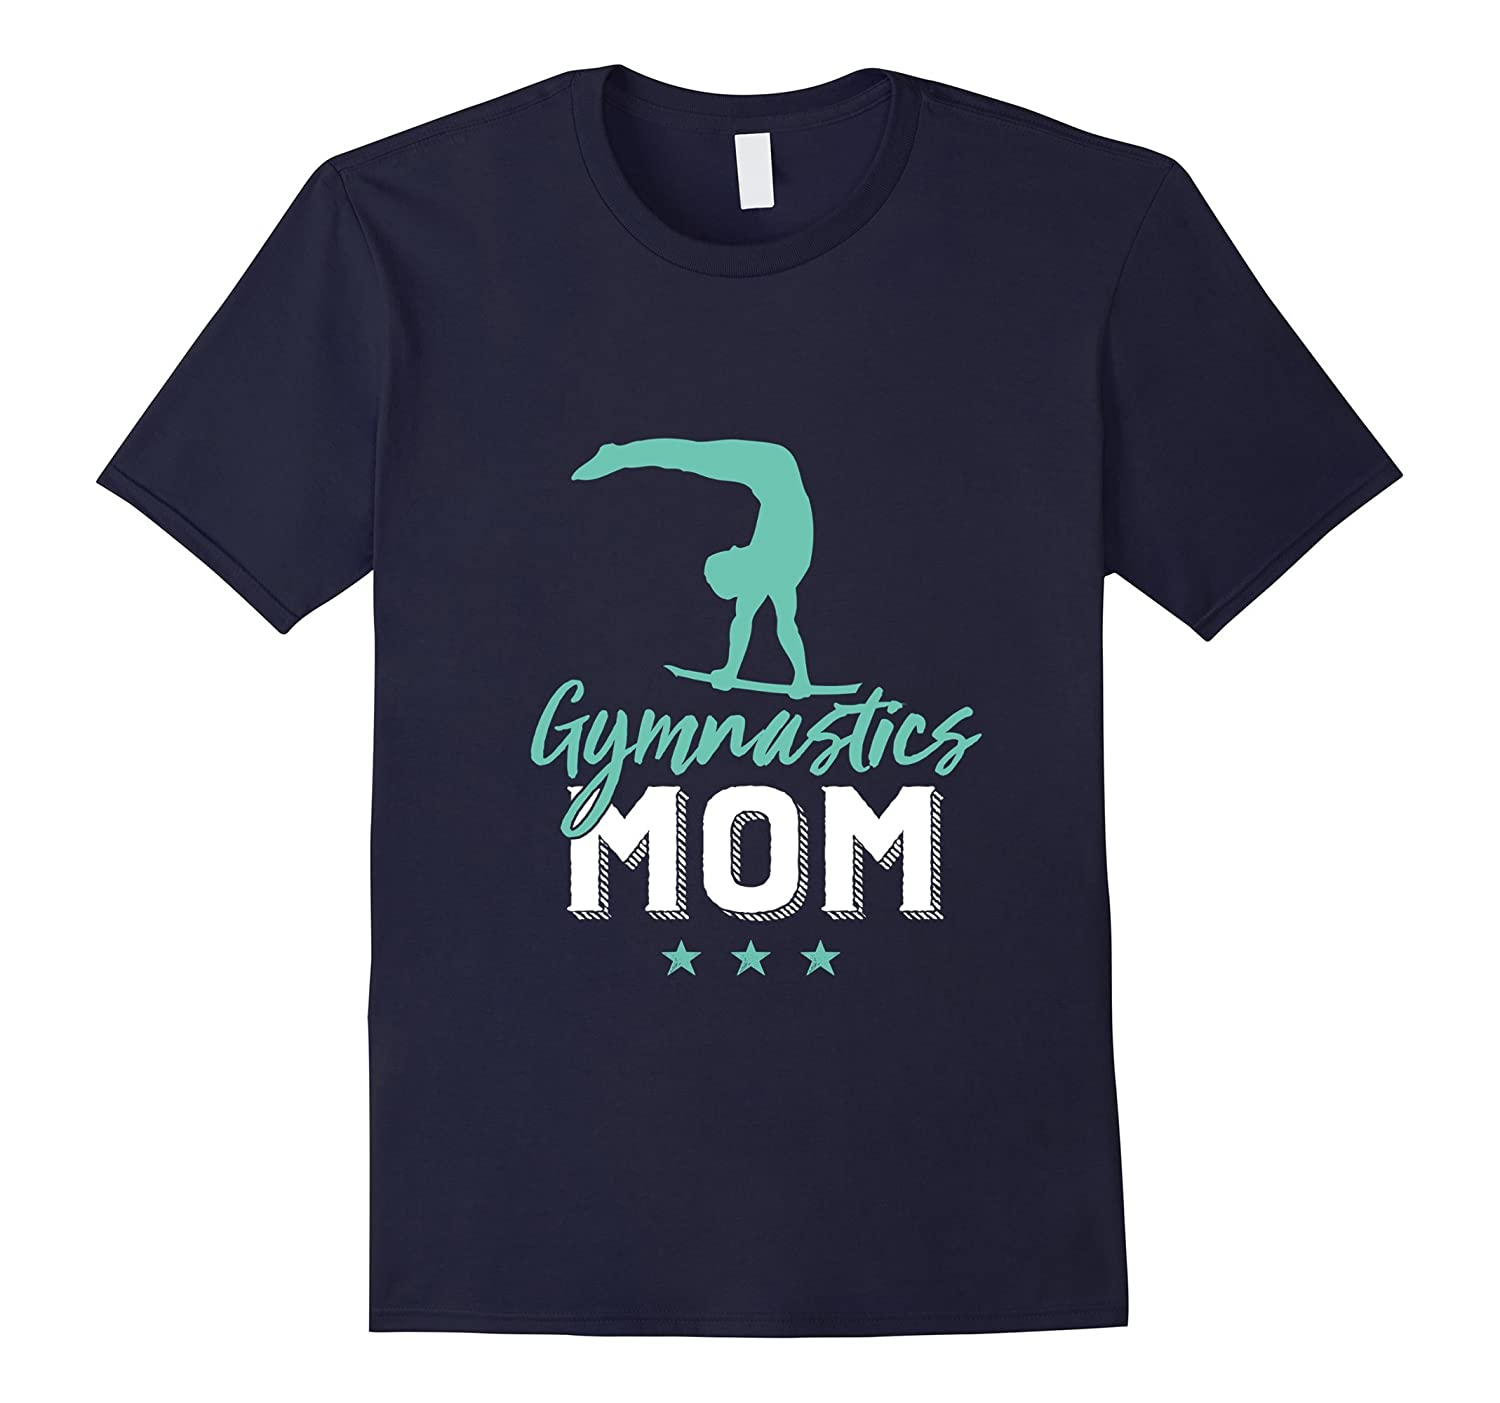 Gymnastics Mom T-shirt for Proud Mothers of Gymnast Kid-TD